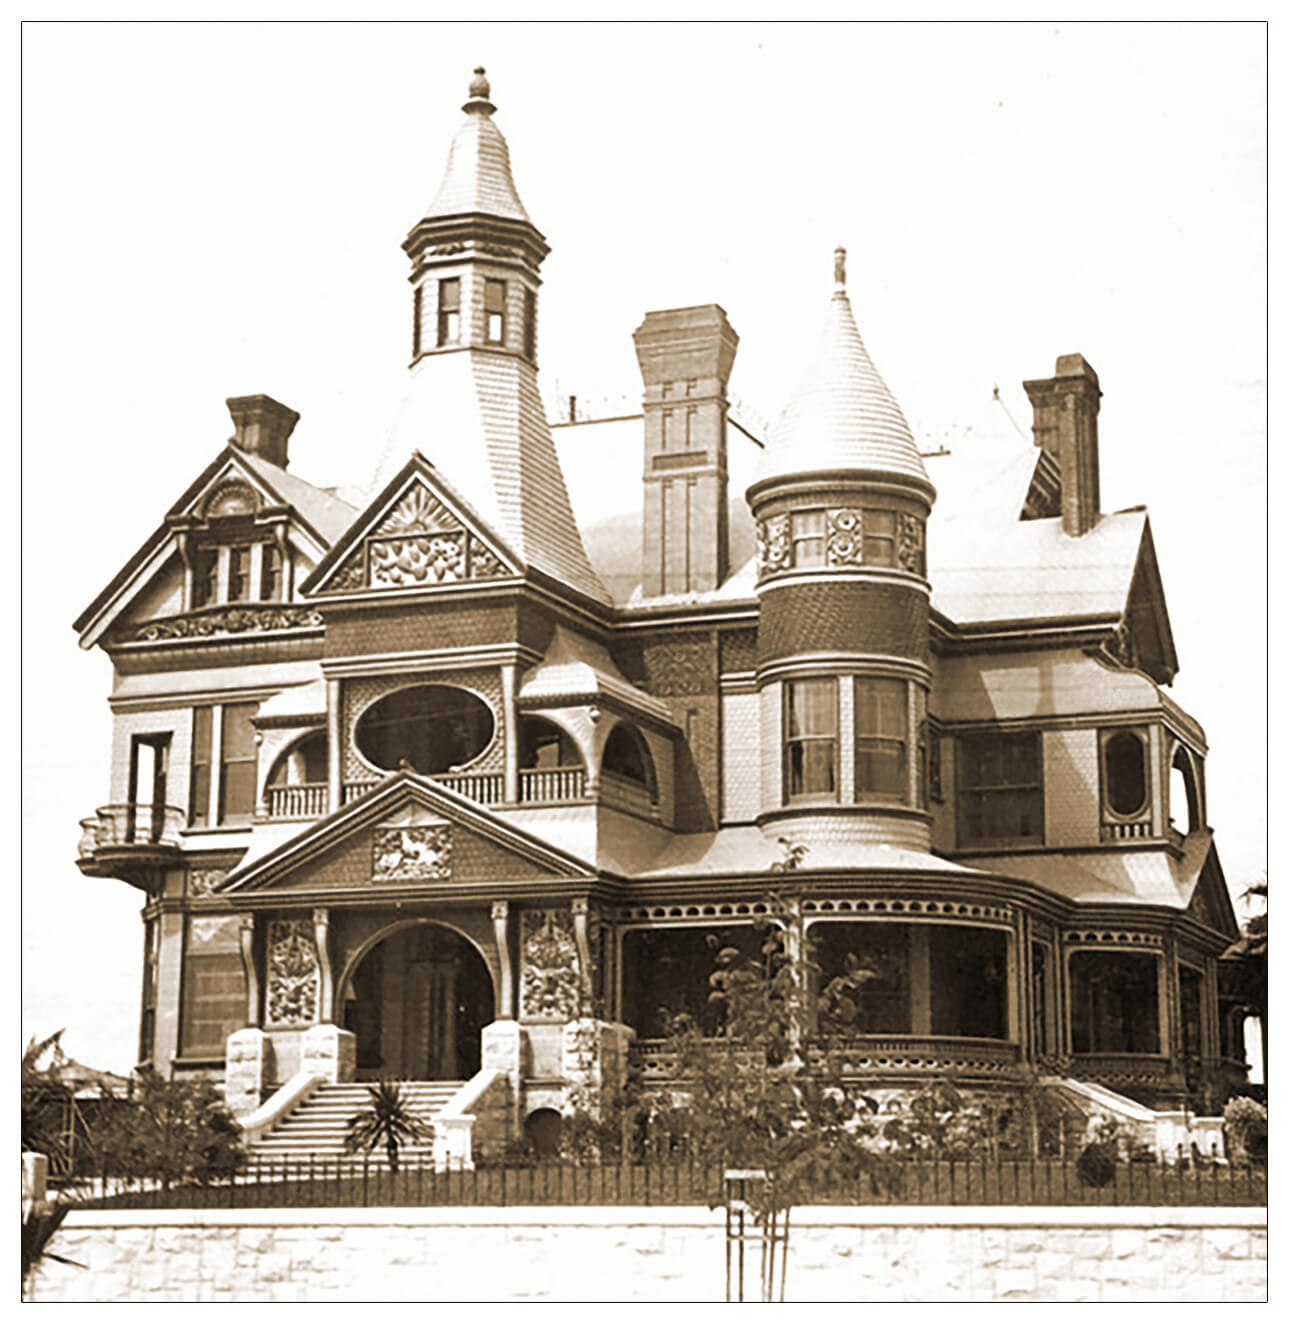 Bradbury Mansion ca late 1800s